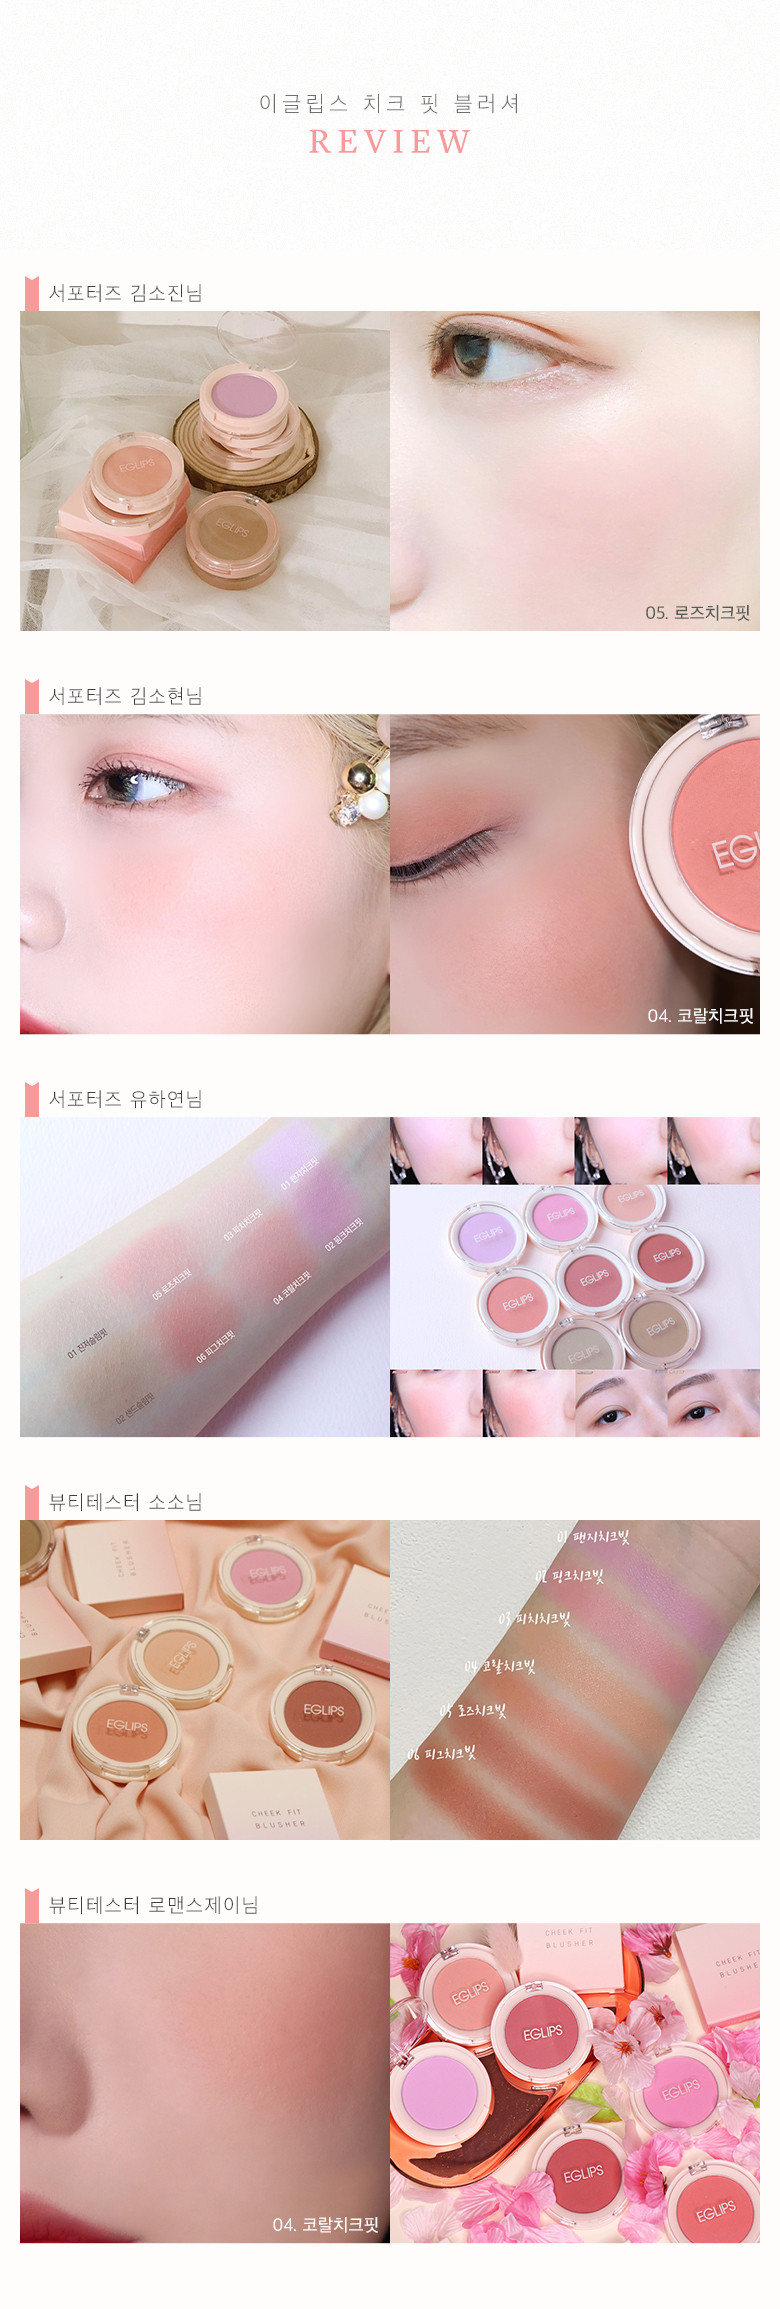 -eglips-cheek-fit-blusher-4g2.jpg